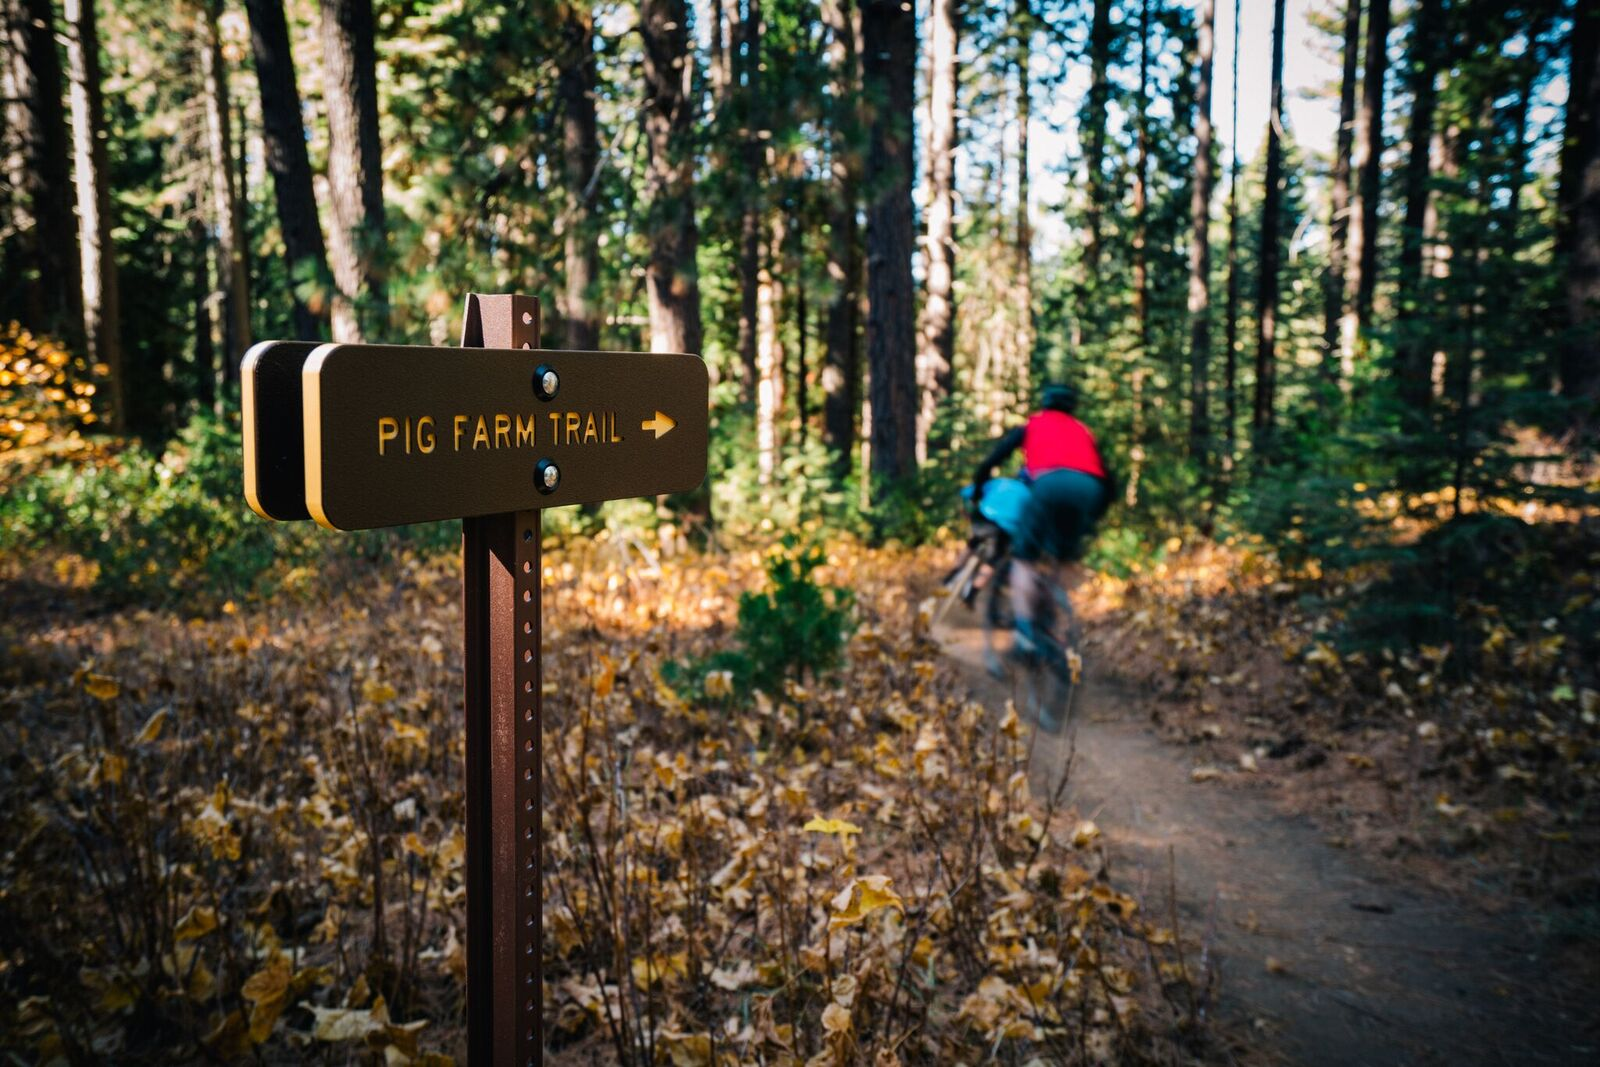 Gateway Tour - This is the perfect half day tour for all levels especially geared for family adventure. Smooth flowy singletrack with a variety of terrain will keep you smiling the whole time. This can be done as a shuttle or mellow climb from Shastice Park. Lunch and snacks can be provided! Starting cost 45.00 per person. Call to book a tour! (530)340-2908